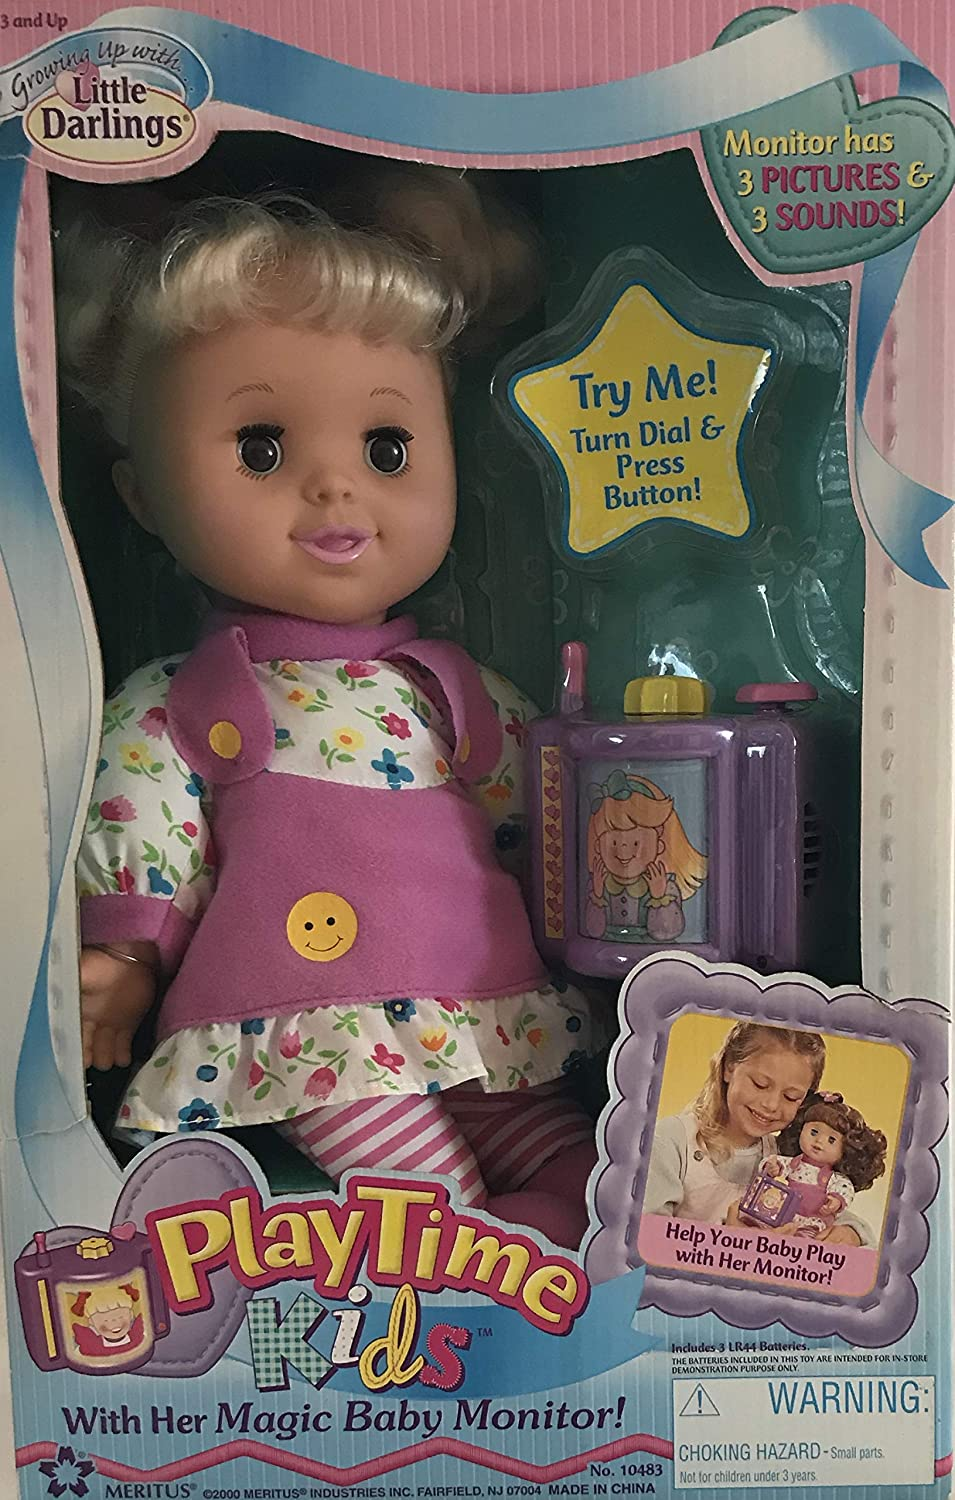 Amazon.com: Playtime Kids Growing UP con Little Darlings ...